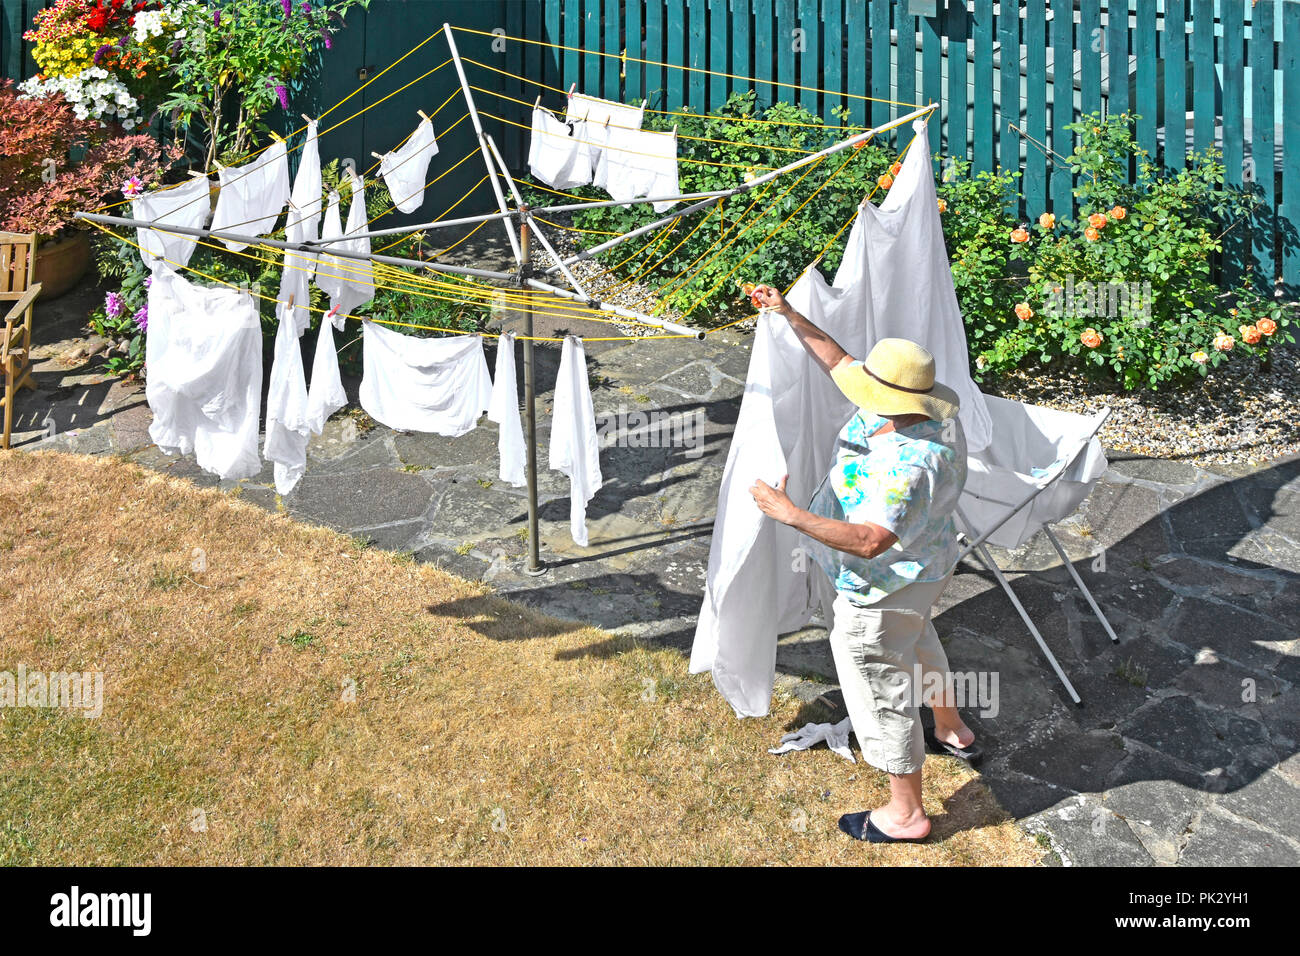 Hot 2018 summer looking down on parched dry back garden lawn & mature senior woman wearing sun hat hanging washing on rotary clothes line England UK - Stock Image